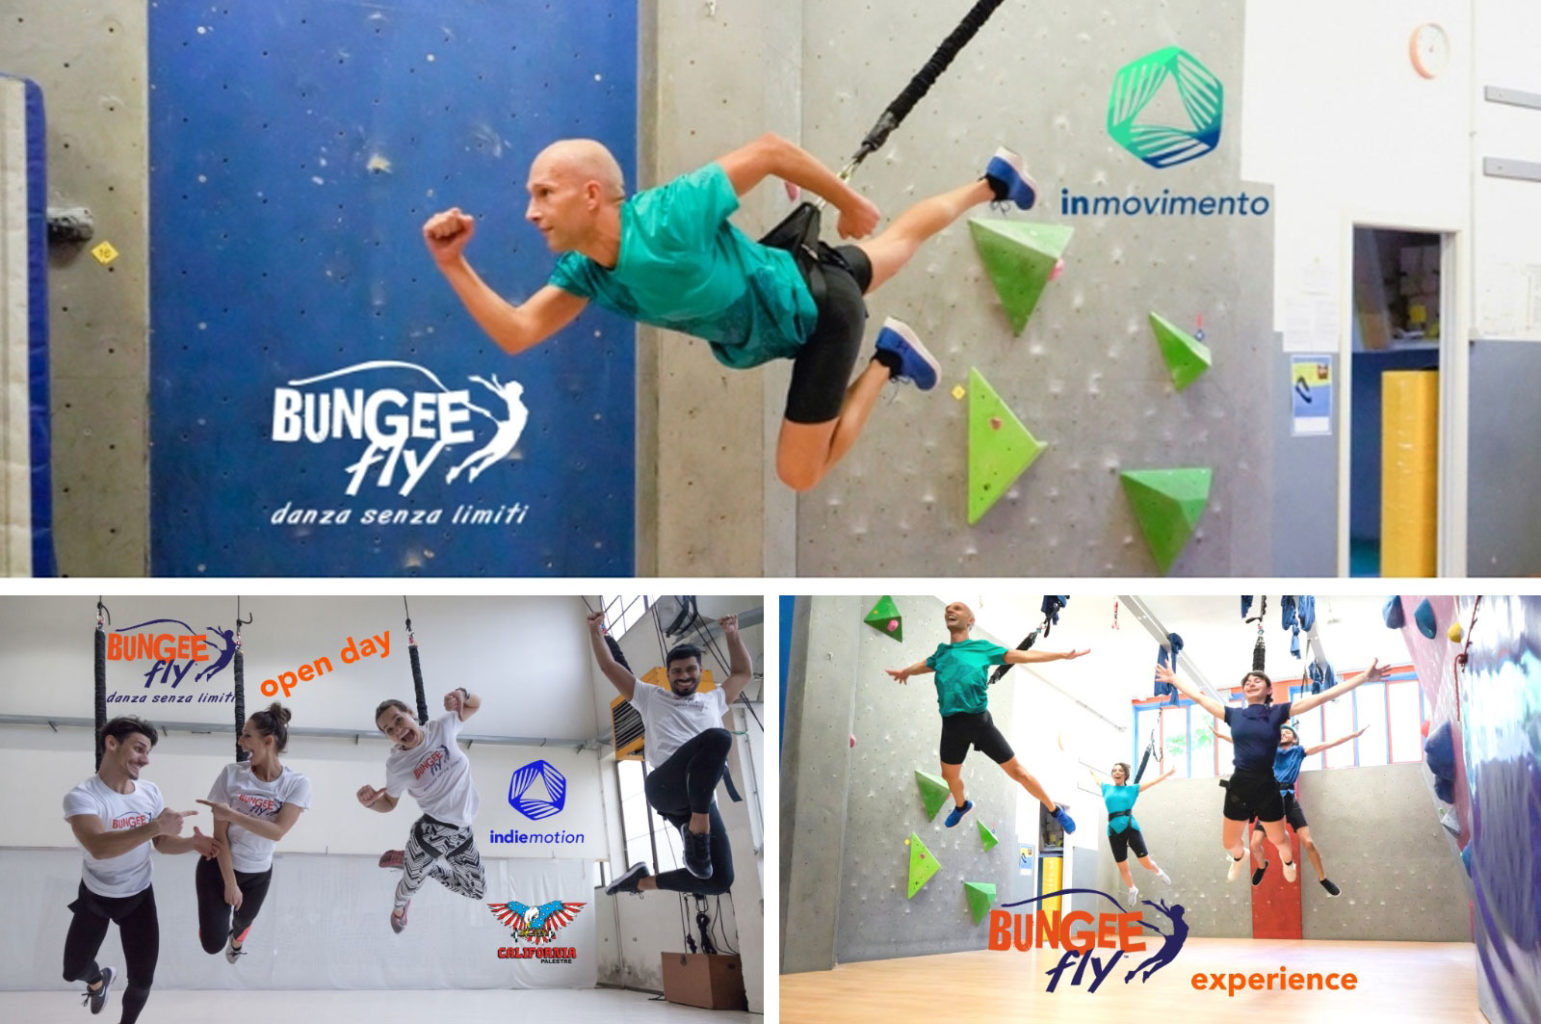 Bungee-Fly